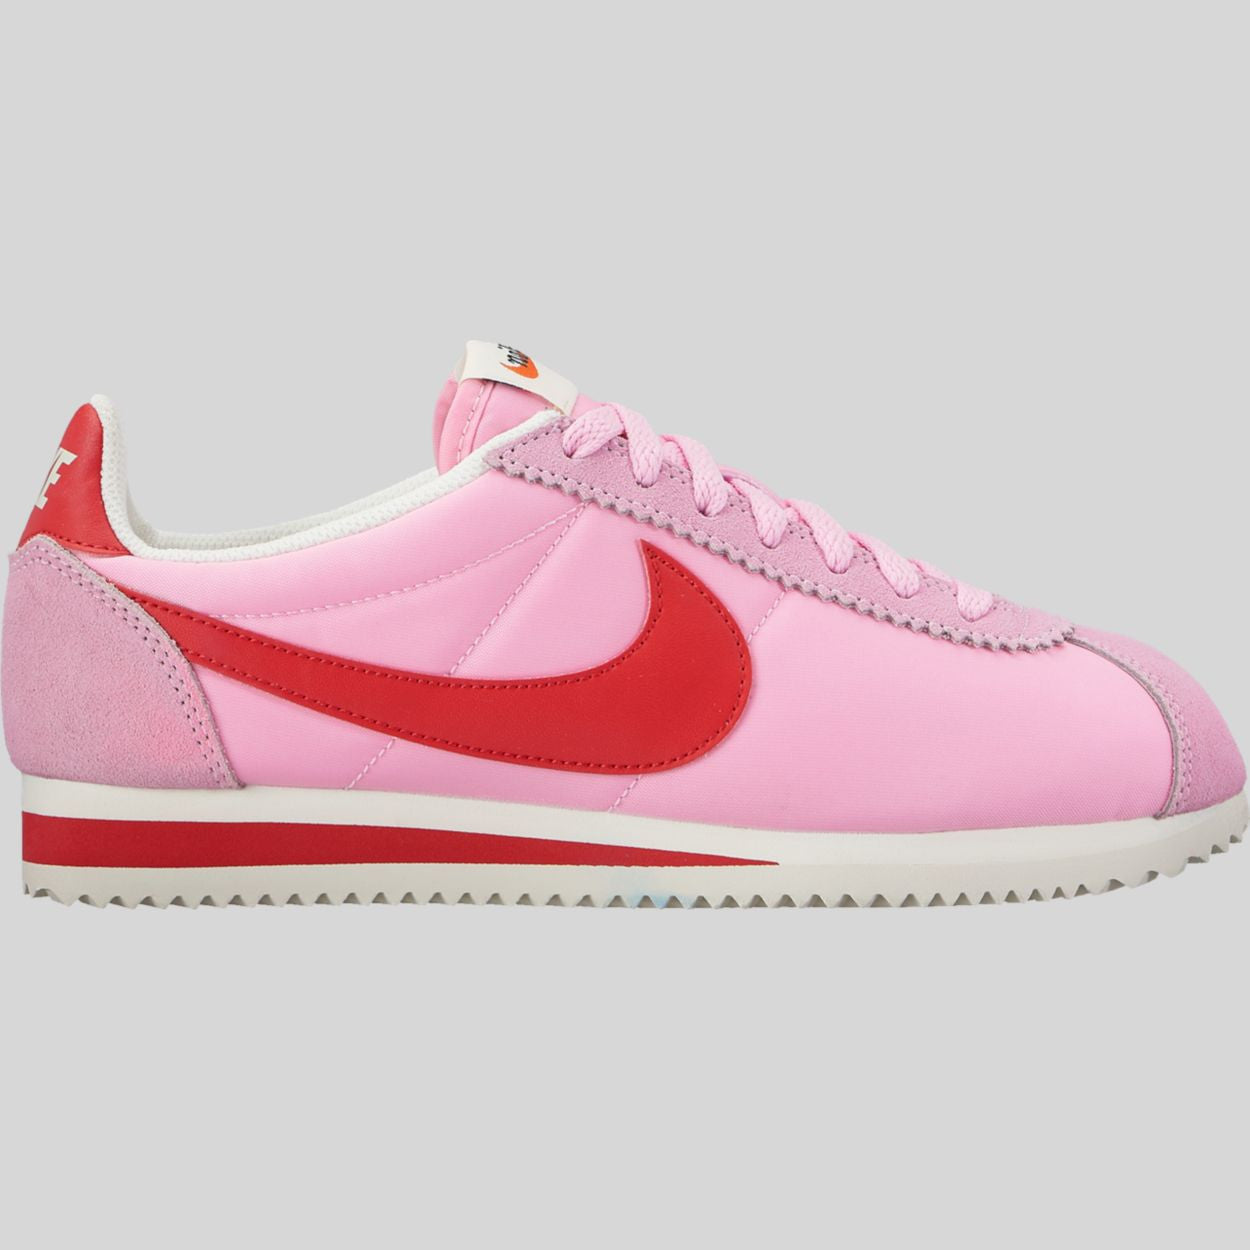 newest 0c299 cf55b greece nike wmns classic cortez nylon prem perfect pink sport red sail  882258 601 defe4 32767